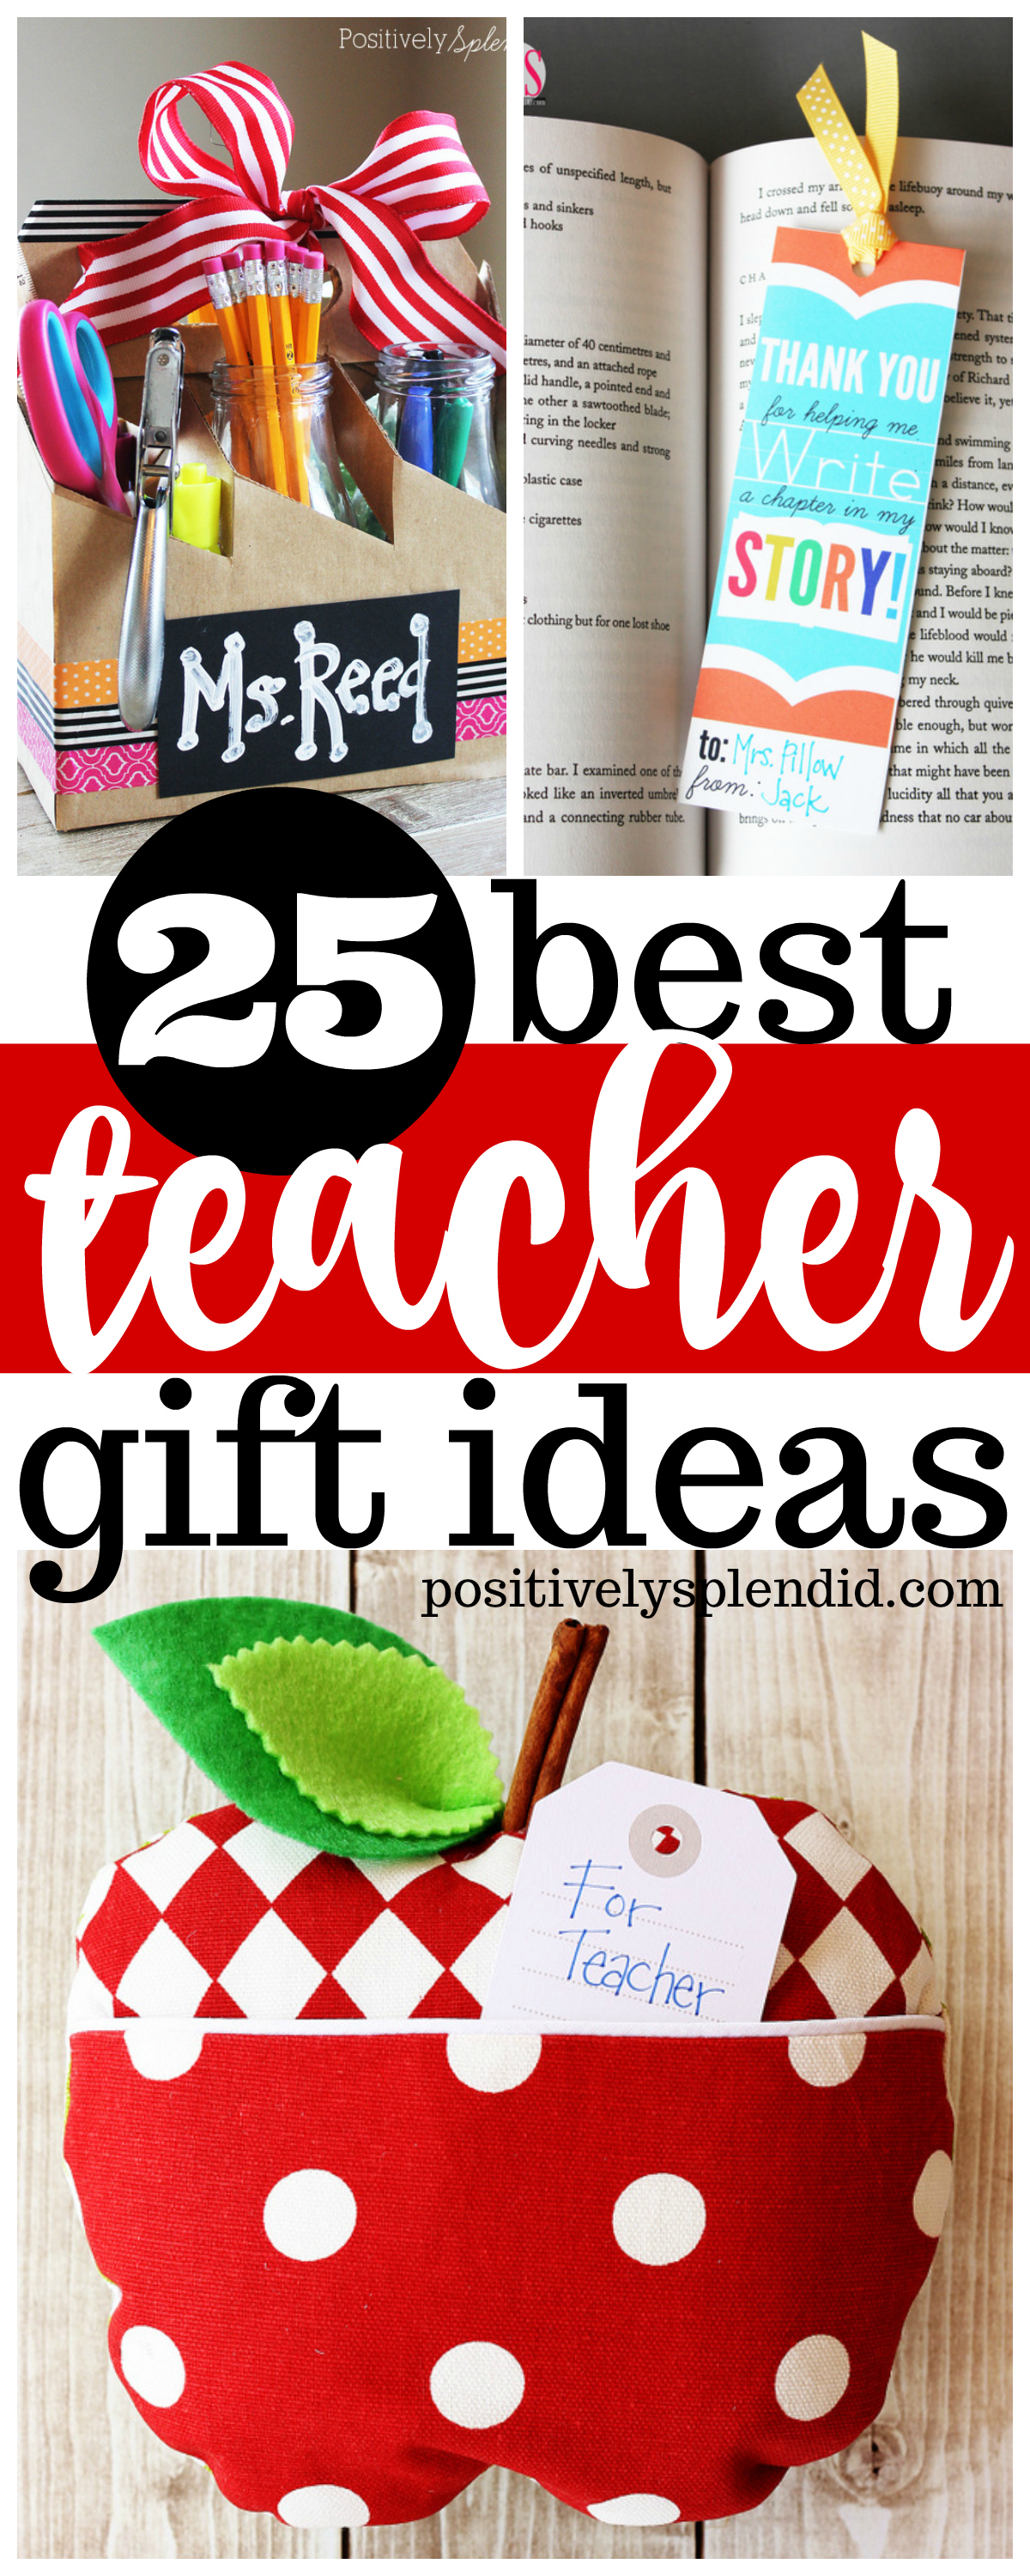 25 Best Teacher Gift Ideas -- Unique handmade ideas teachers